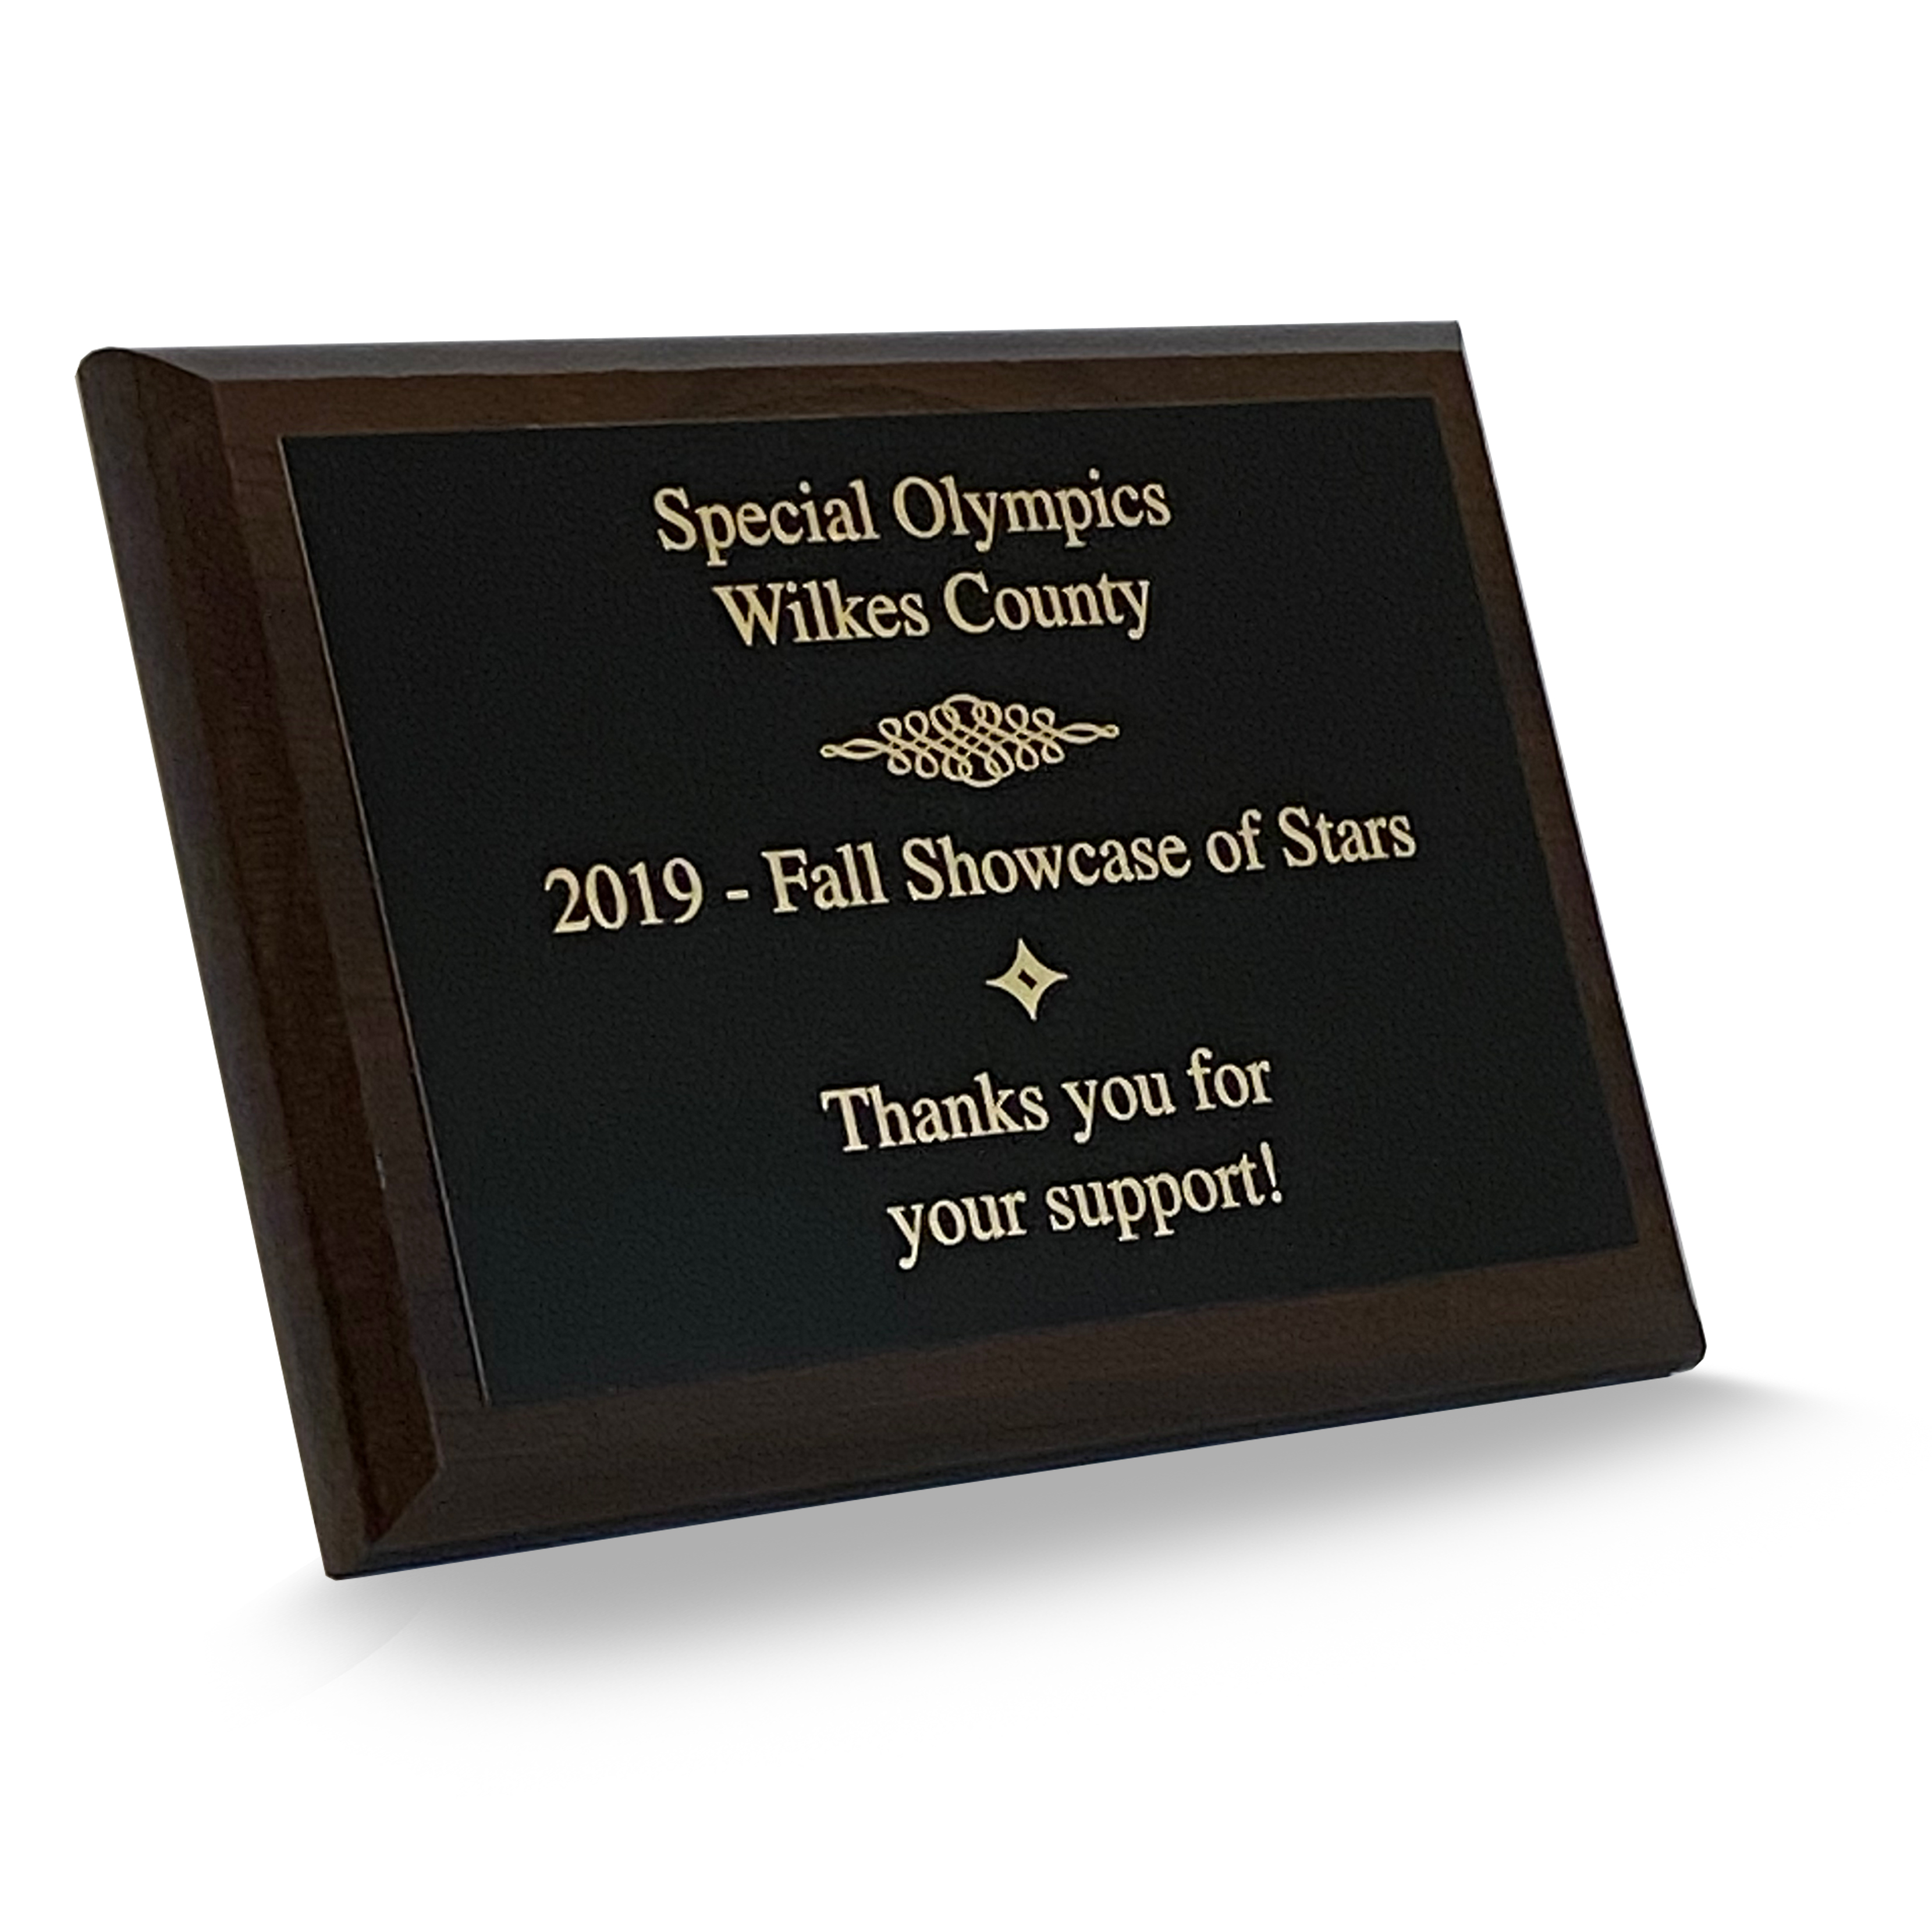 2019 Wilkes County Special Olympics